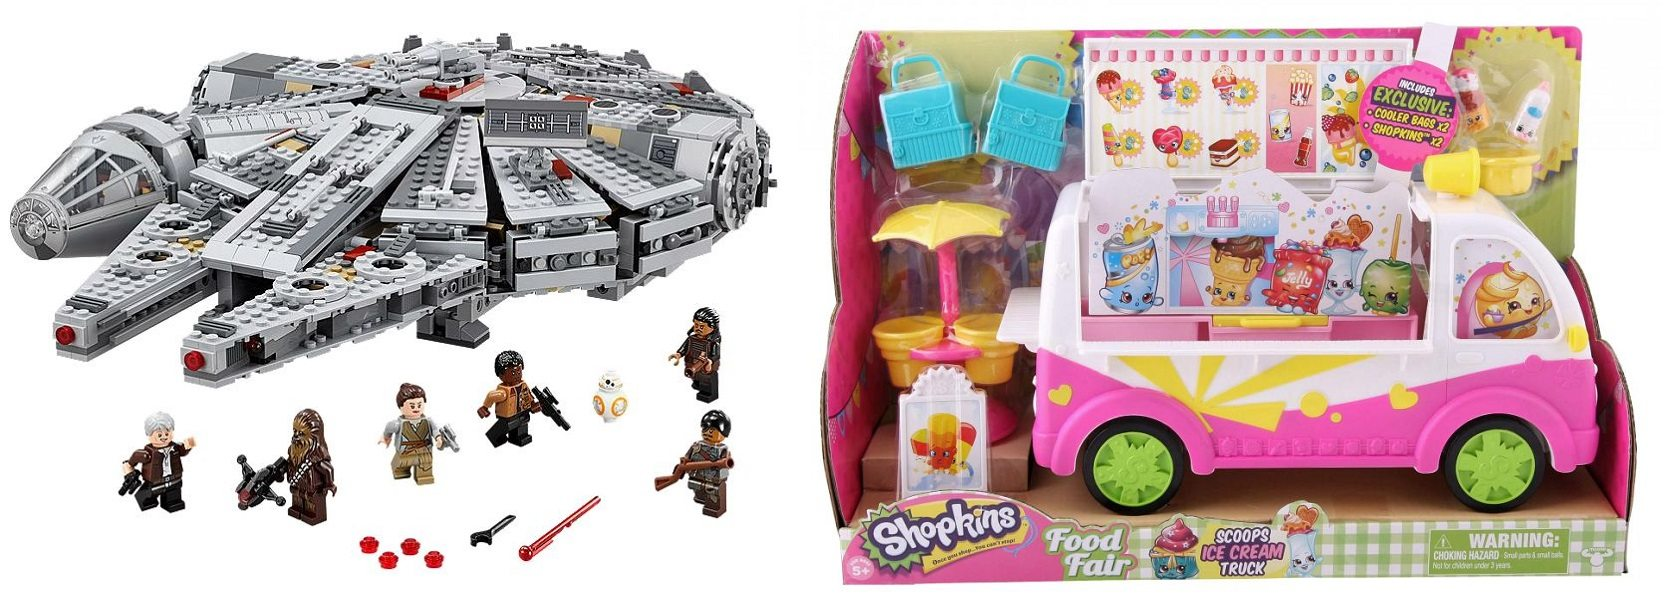 Toy of the Year Awards Continue to Insist That Boys Deserve Adventure, Girls Should Go Shopping